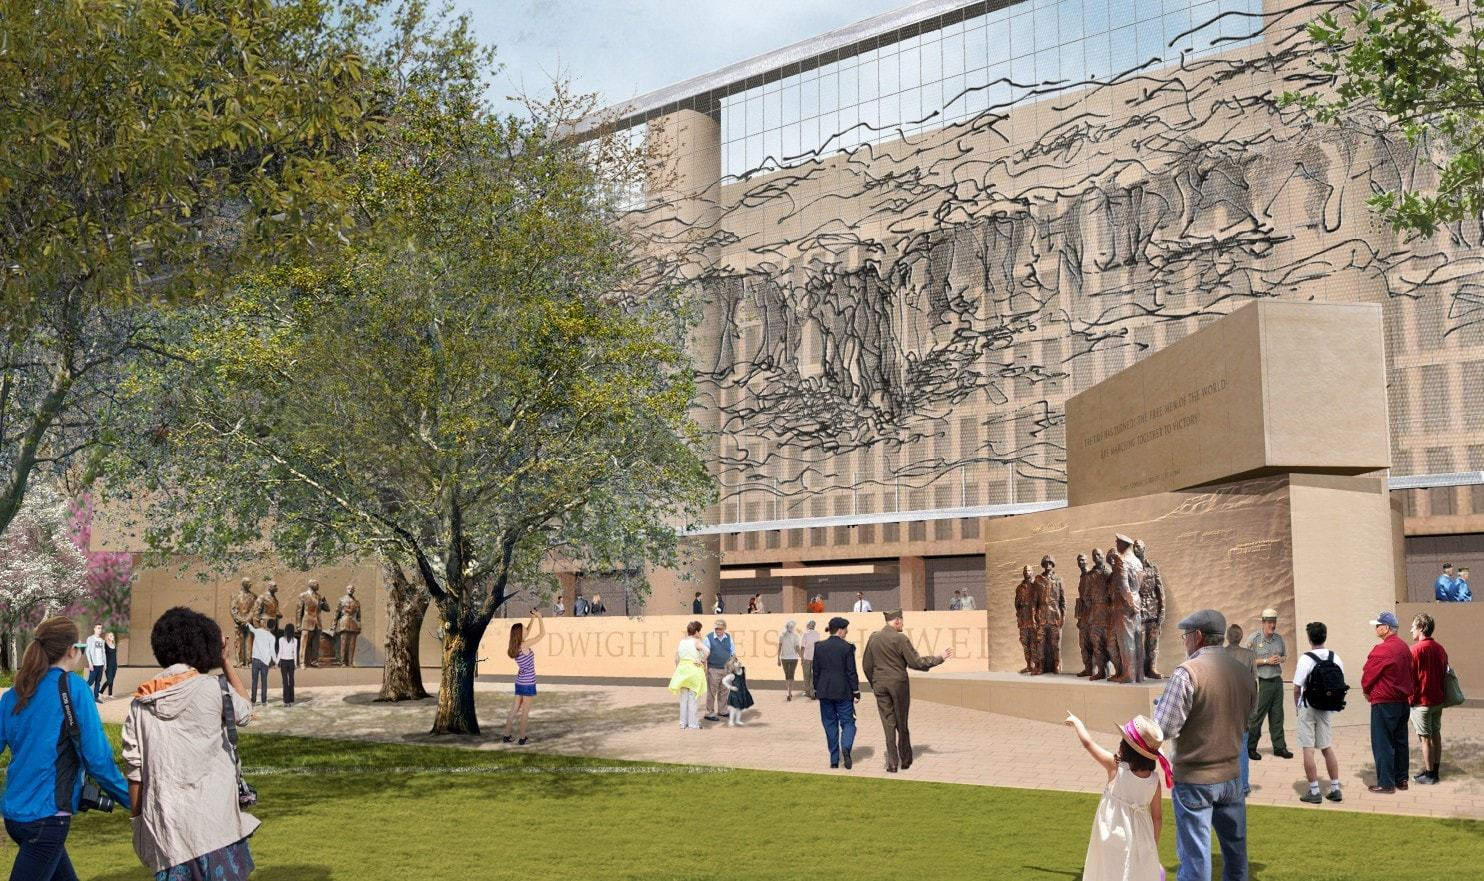 Eleven years after winning the commission to design the Eisenhower Memorial in Washington, D.C. ground was finally broken in 2017 and completion is scheduled in 2021, when Gehry will be 92 years old.